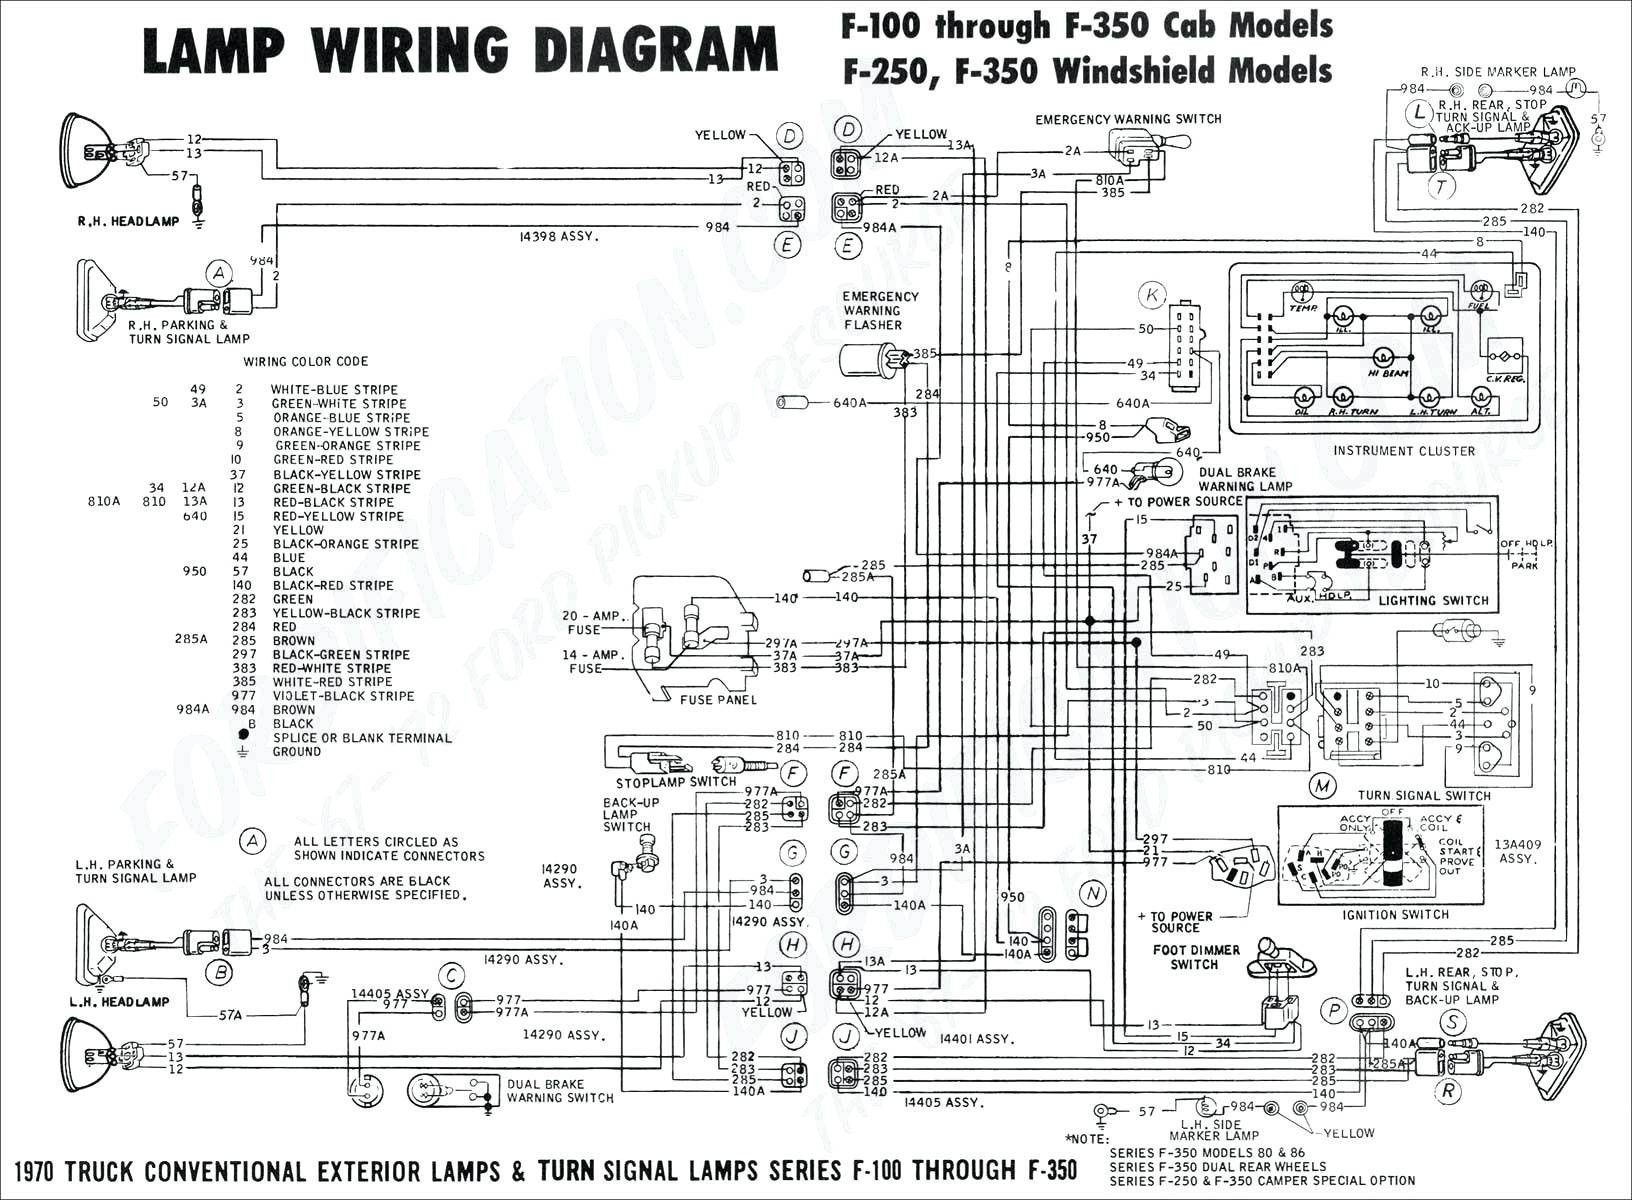 Wiring Diagram For Briggs And Stratton Ignition